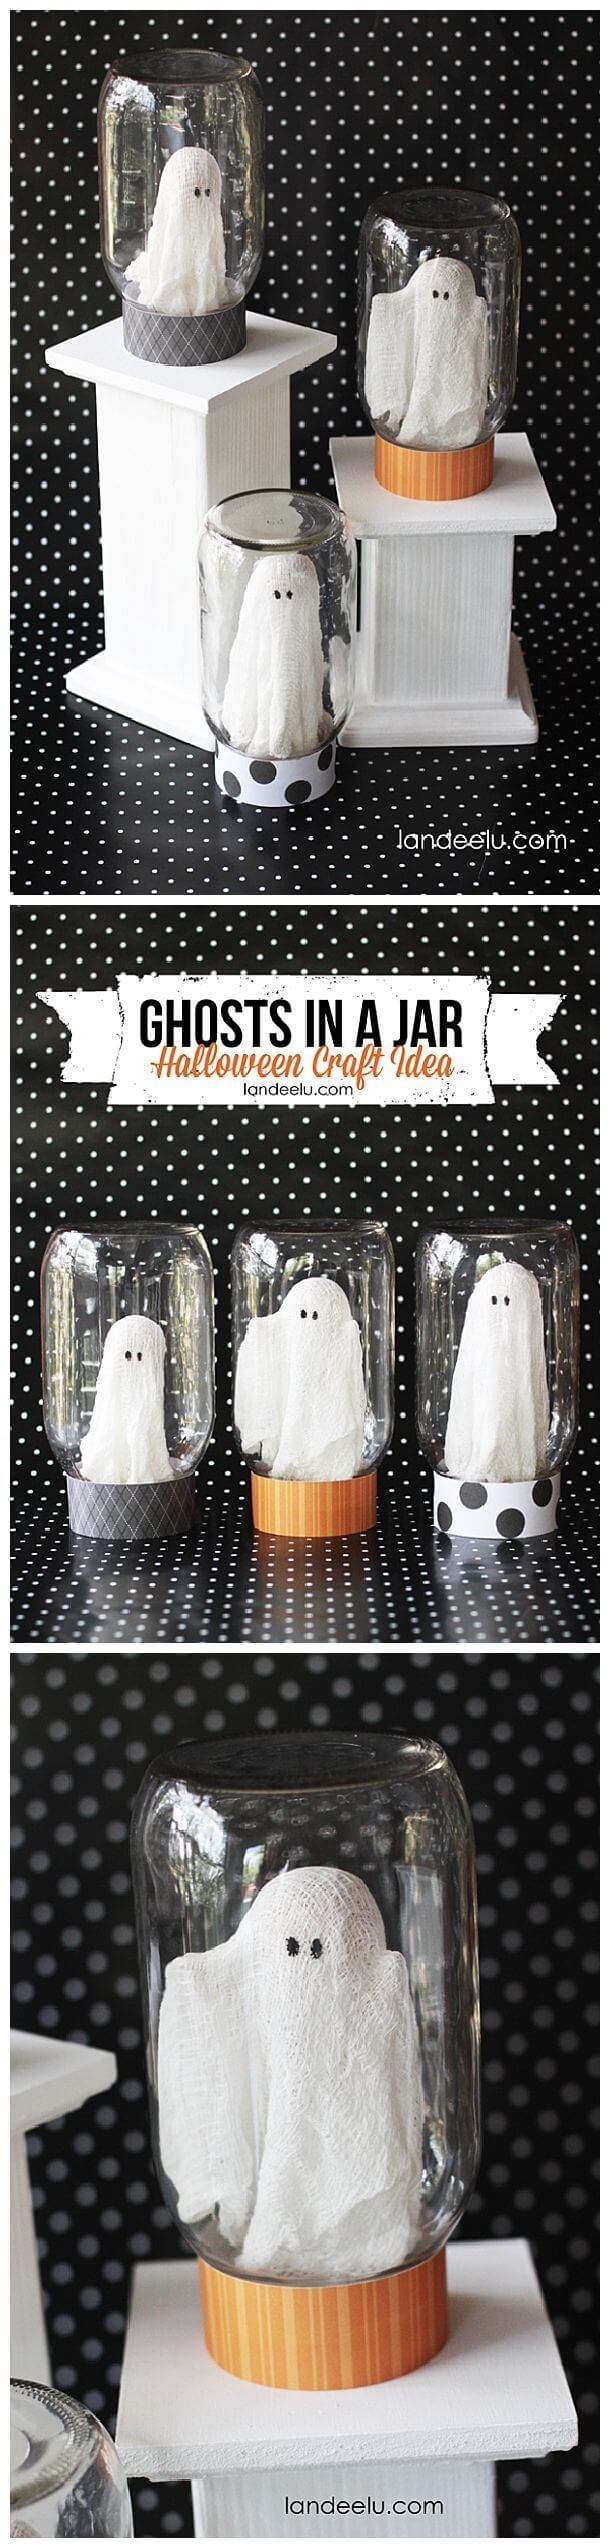 DIY Mason Jar Halloween Crafts: Catch-A-Ghost Halloween Craft Idea